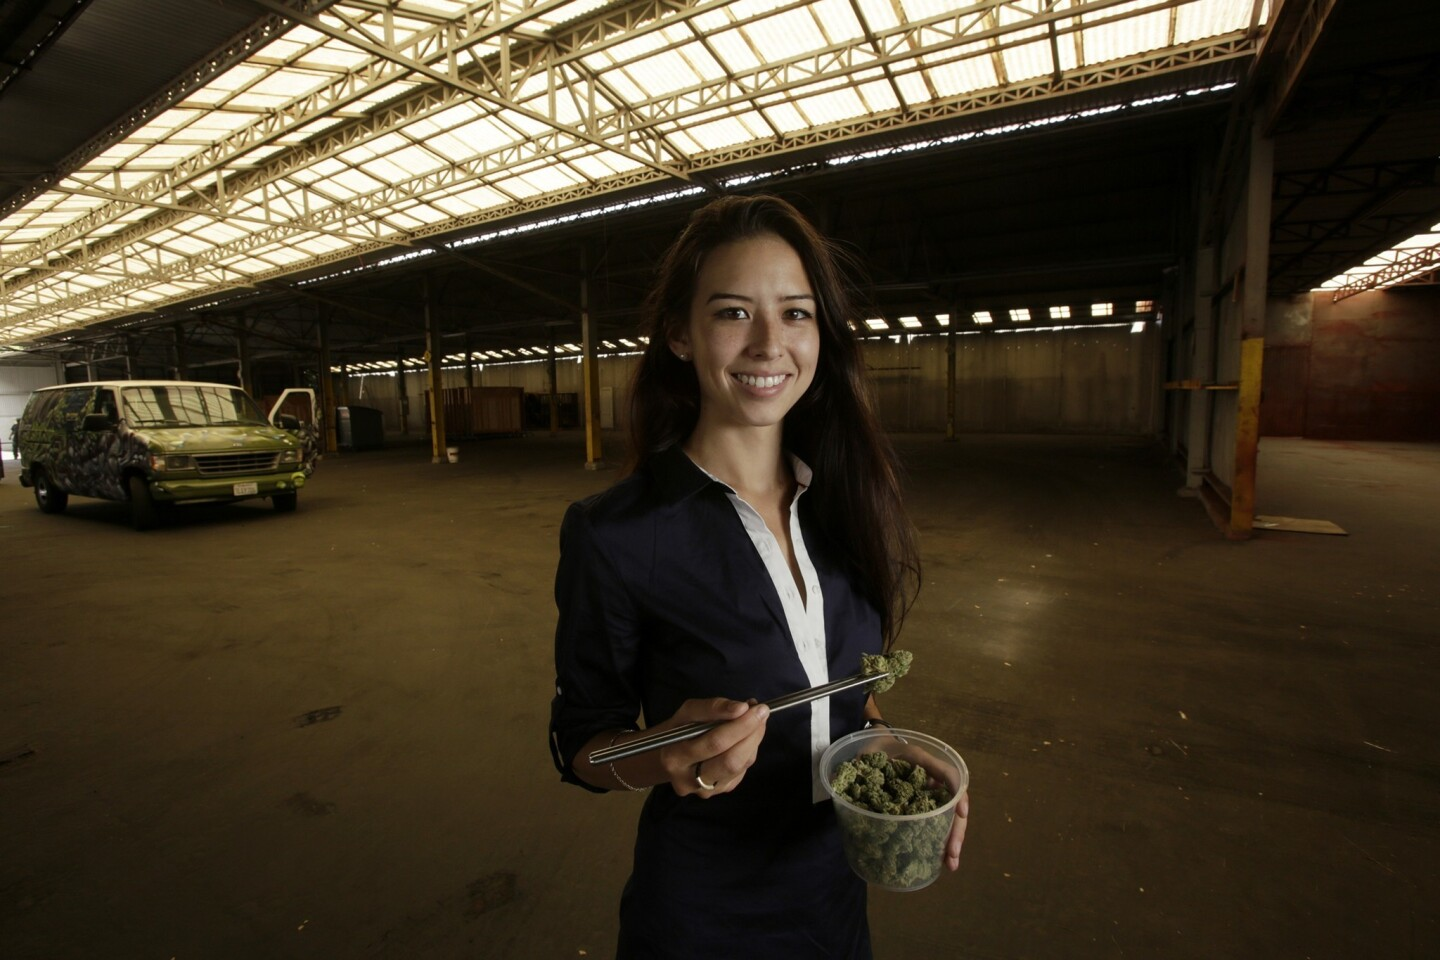 Paizley Bradbury, 22, executive director of Progressive Horizon Inc., holds a marijuana bud of strain called OG Kush in a large shed where the company is going to host the California Heritage Market on July 4-6 in Los Angeles.